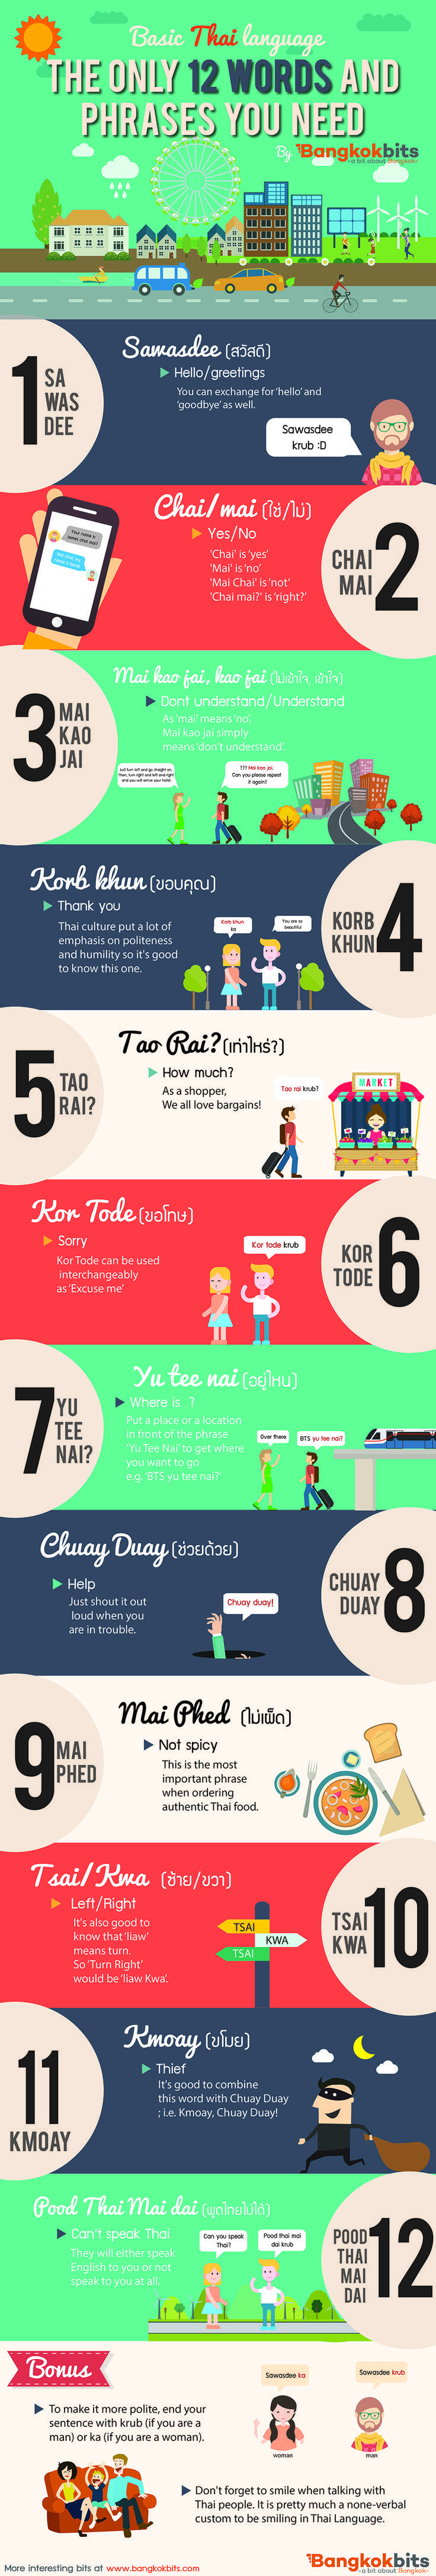 Basic Thai Language! These are the only 12 words and phrases you need to survive Bangkok! #bangkok #thailand #infographic